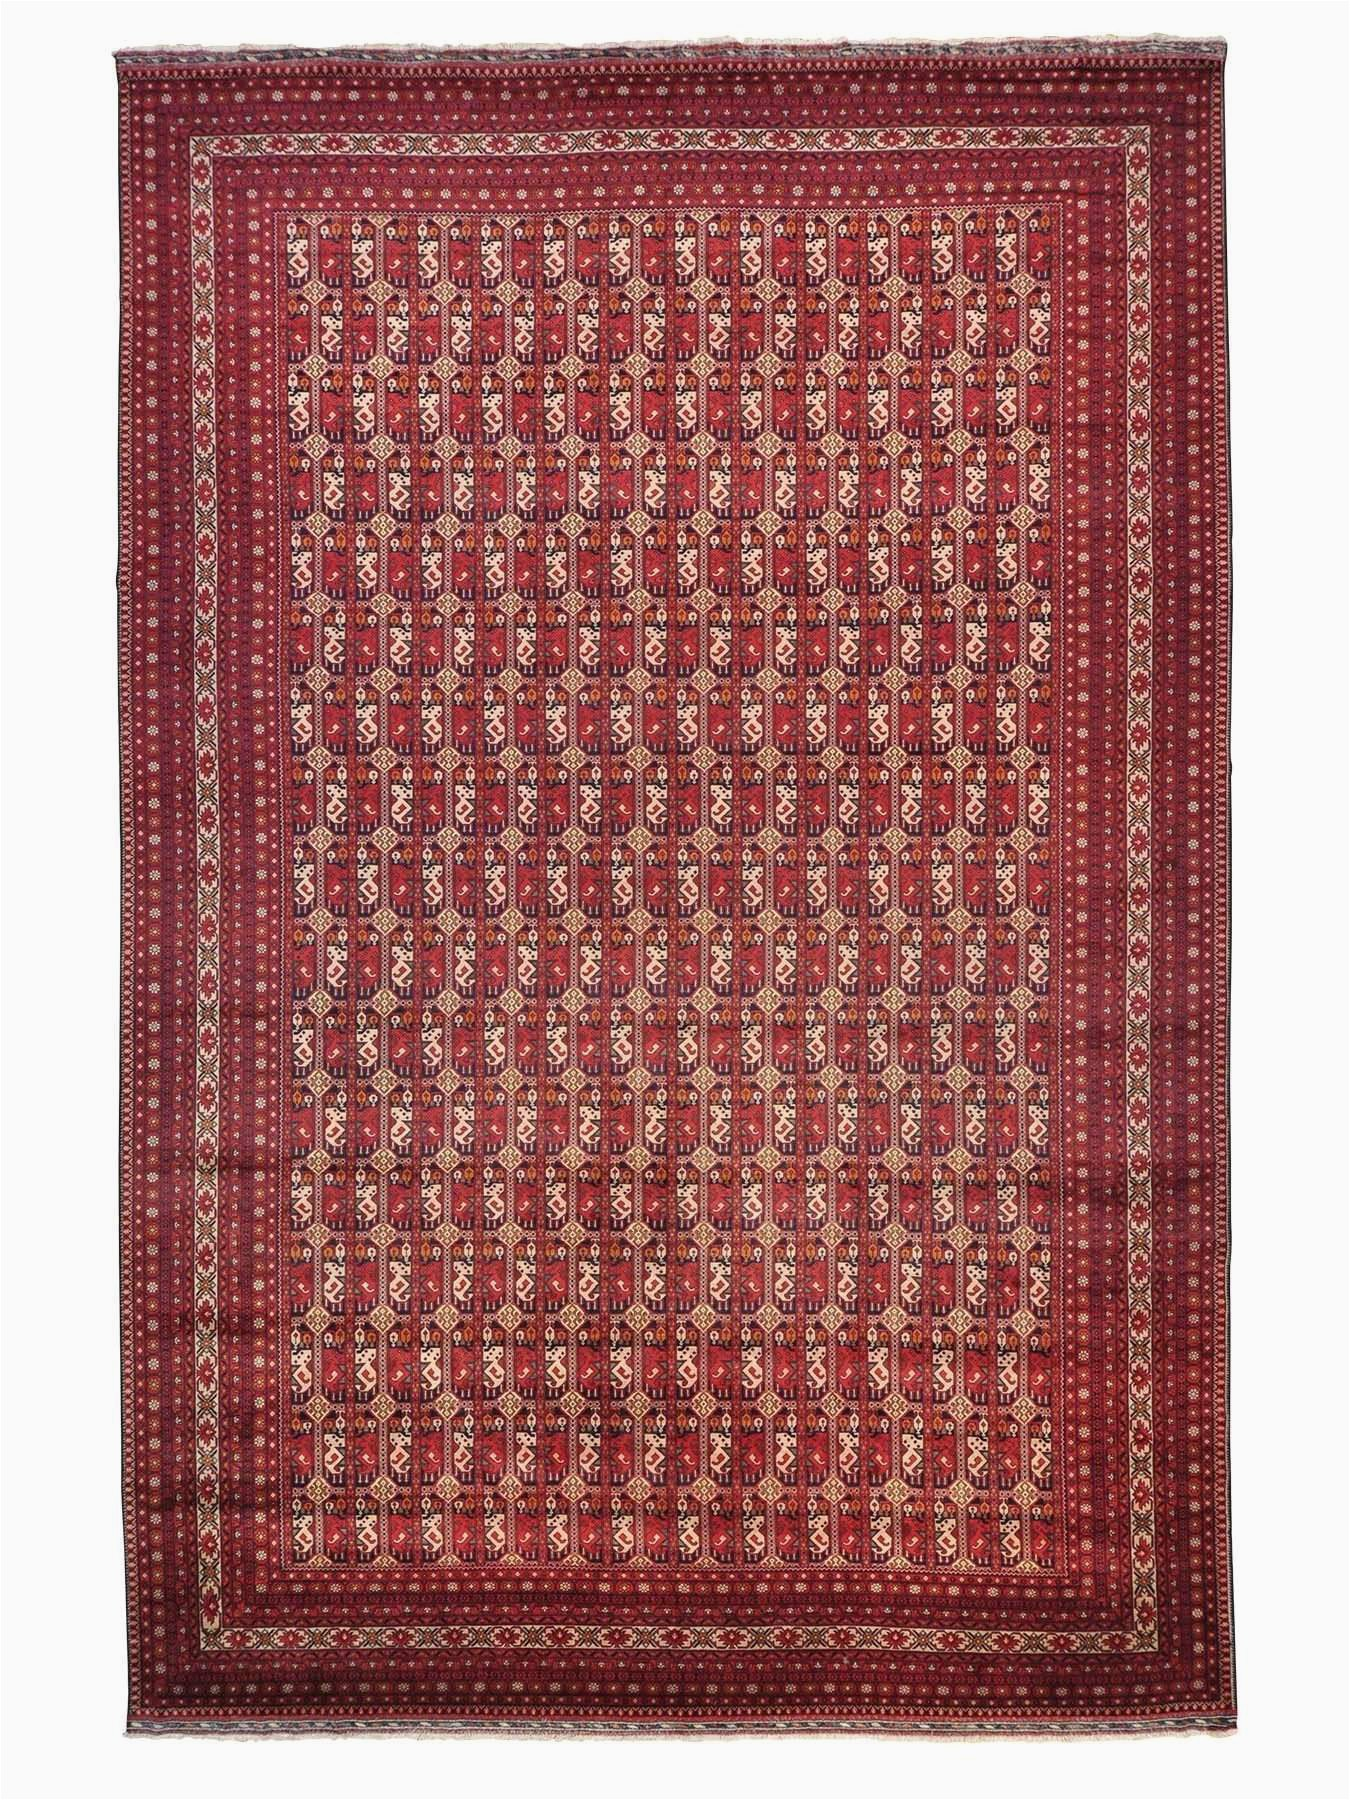 12 x 18 area rugs